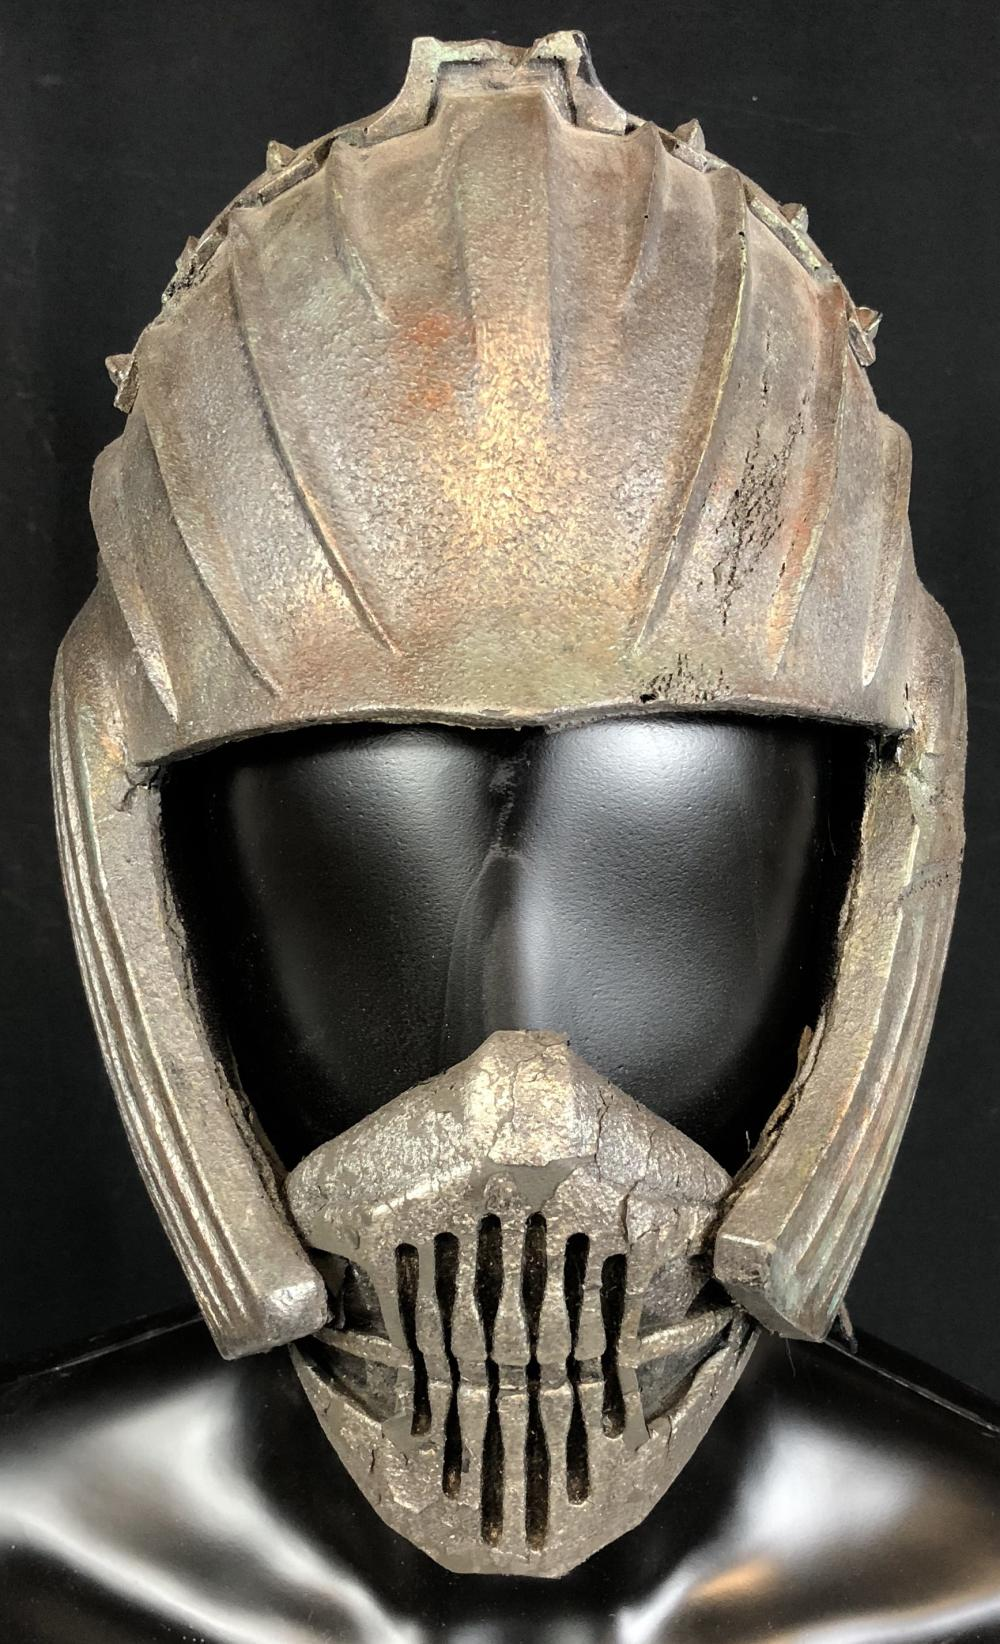 The Chronicles of Riddick (2004) - Necromonger Helmet and Mouth Guard